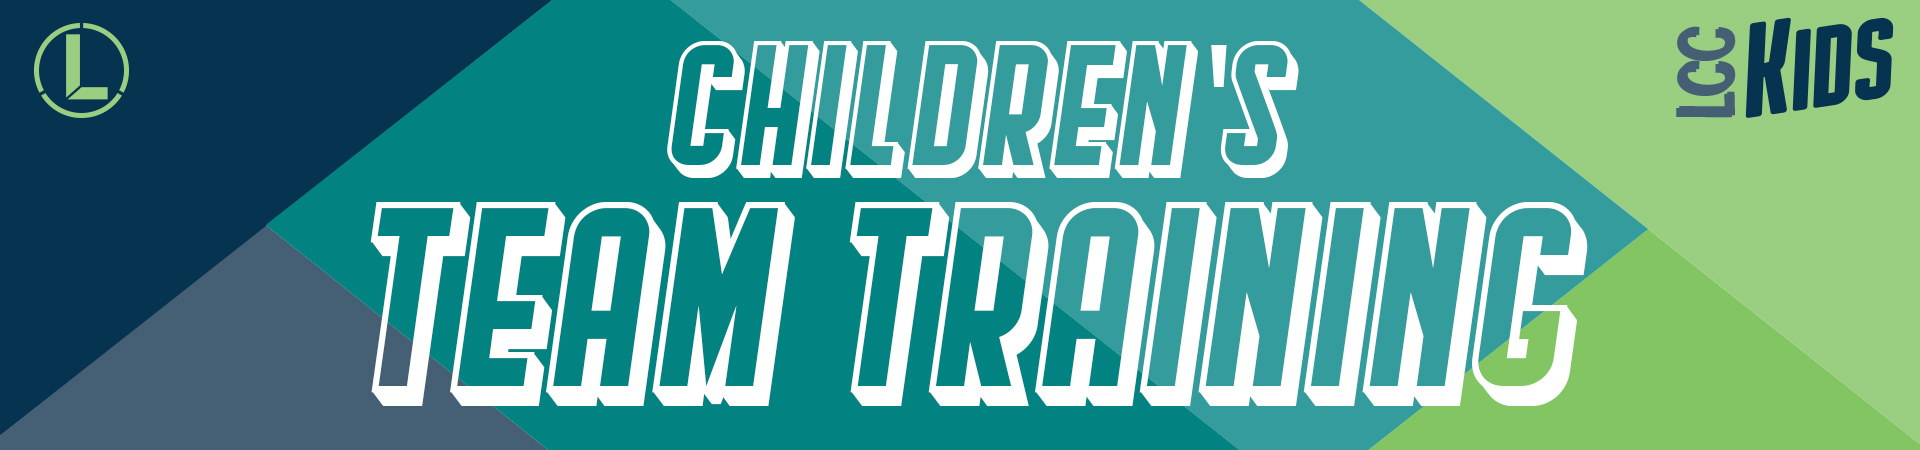 Childrens Team Training Banner.jpg